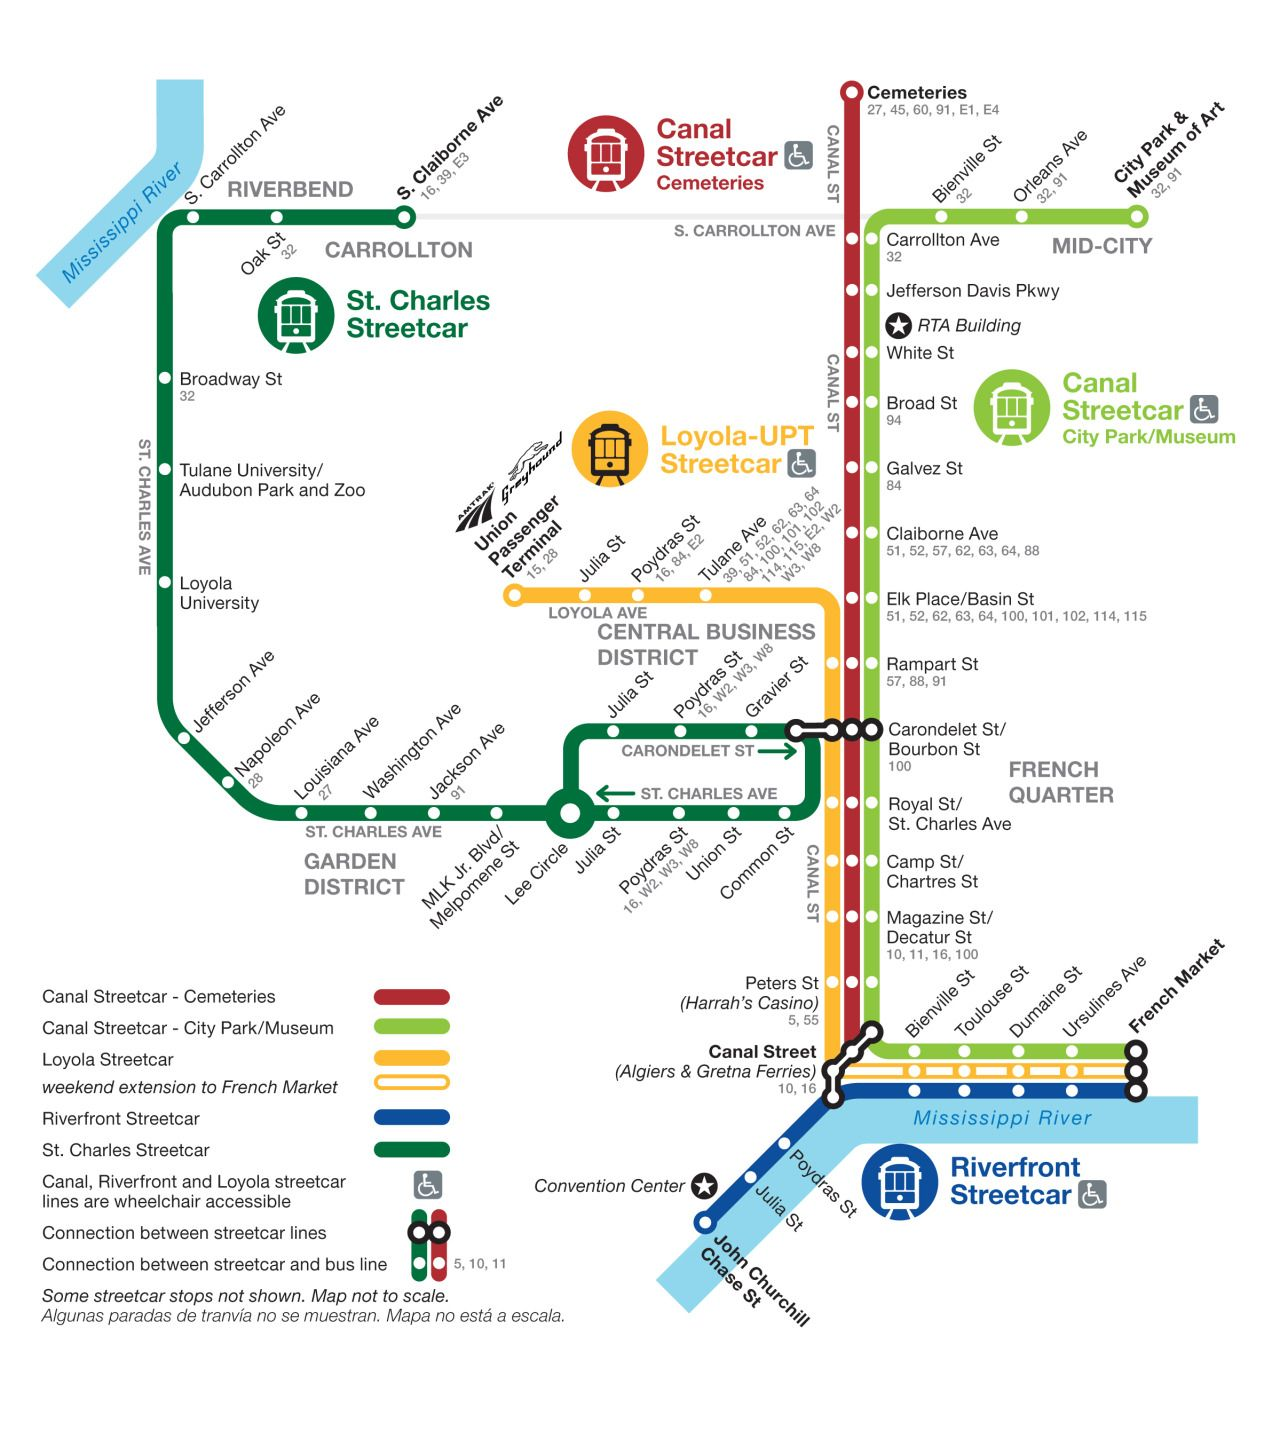 Official Map Streetcar Network New Orleans Brought to my attention